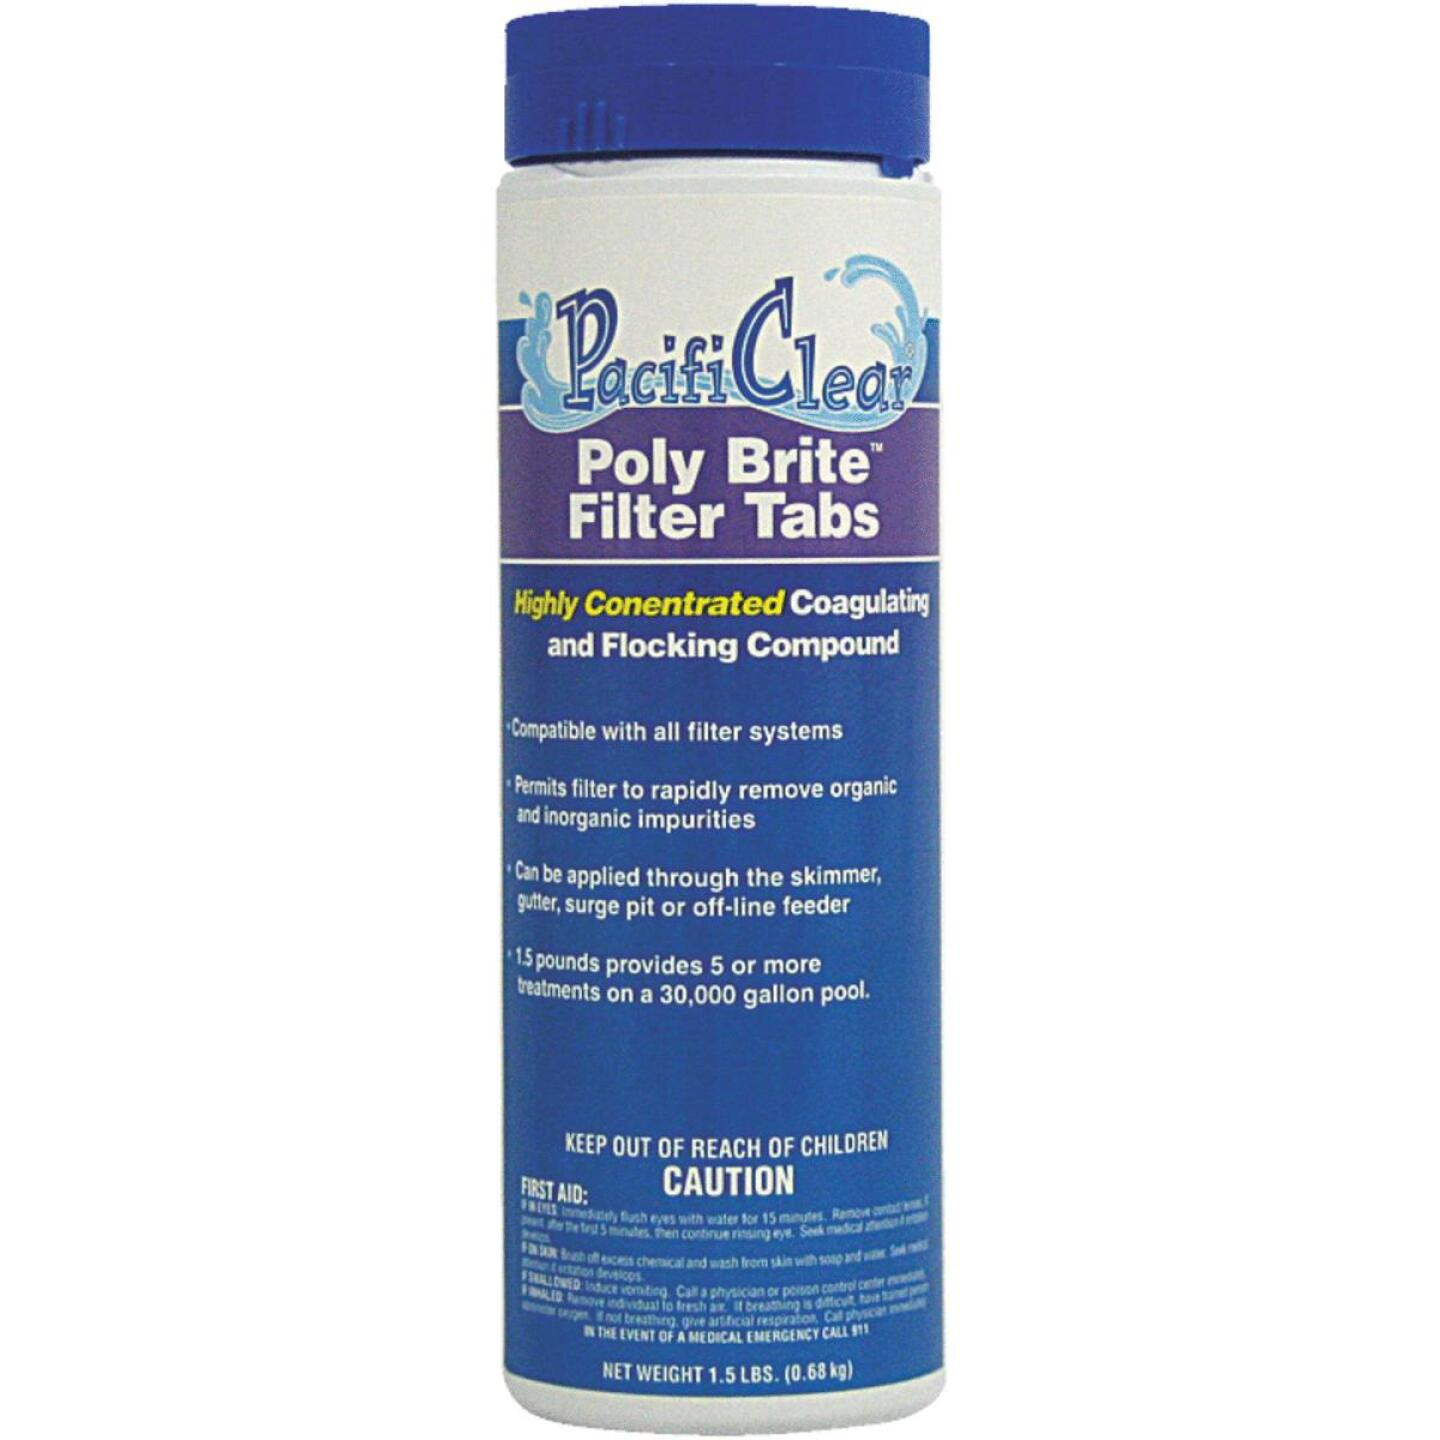 PacifiClear Poly Brite 1.5 Lb. Filter Clarifier Tablet Image 1